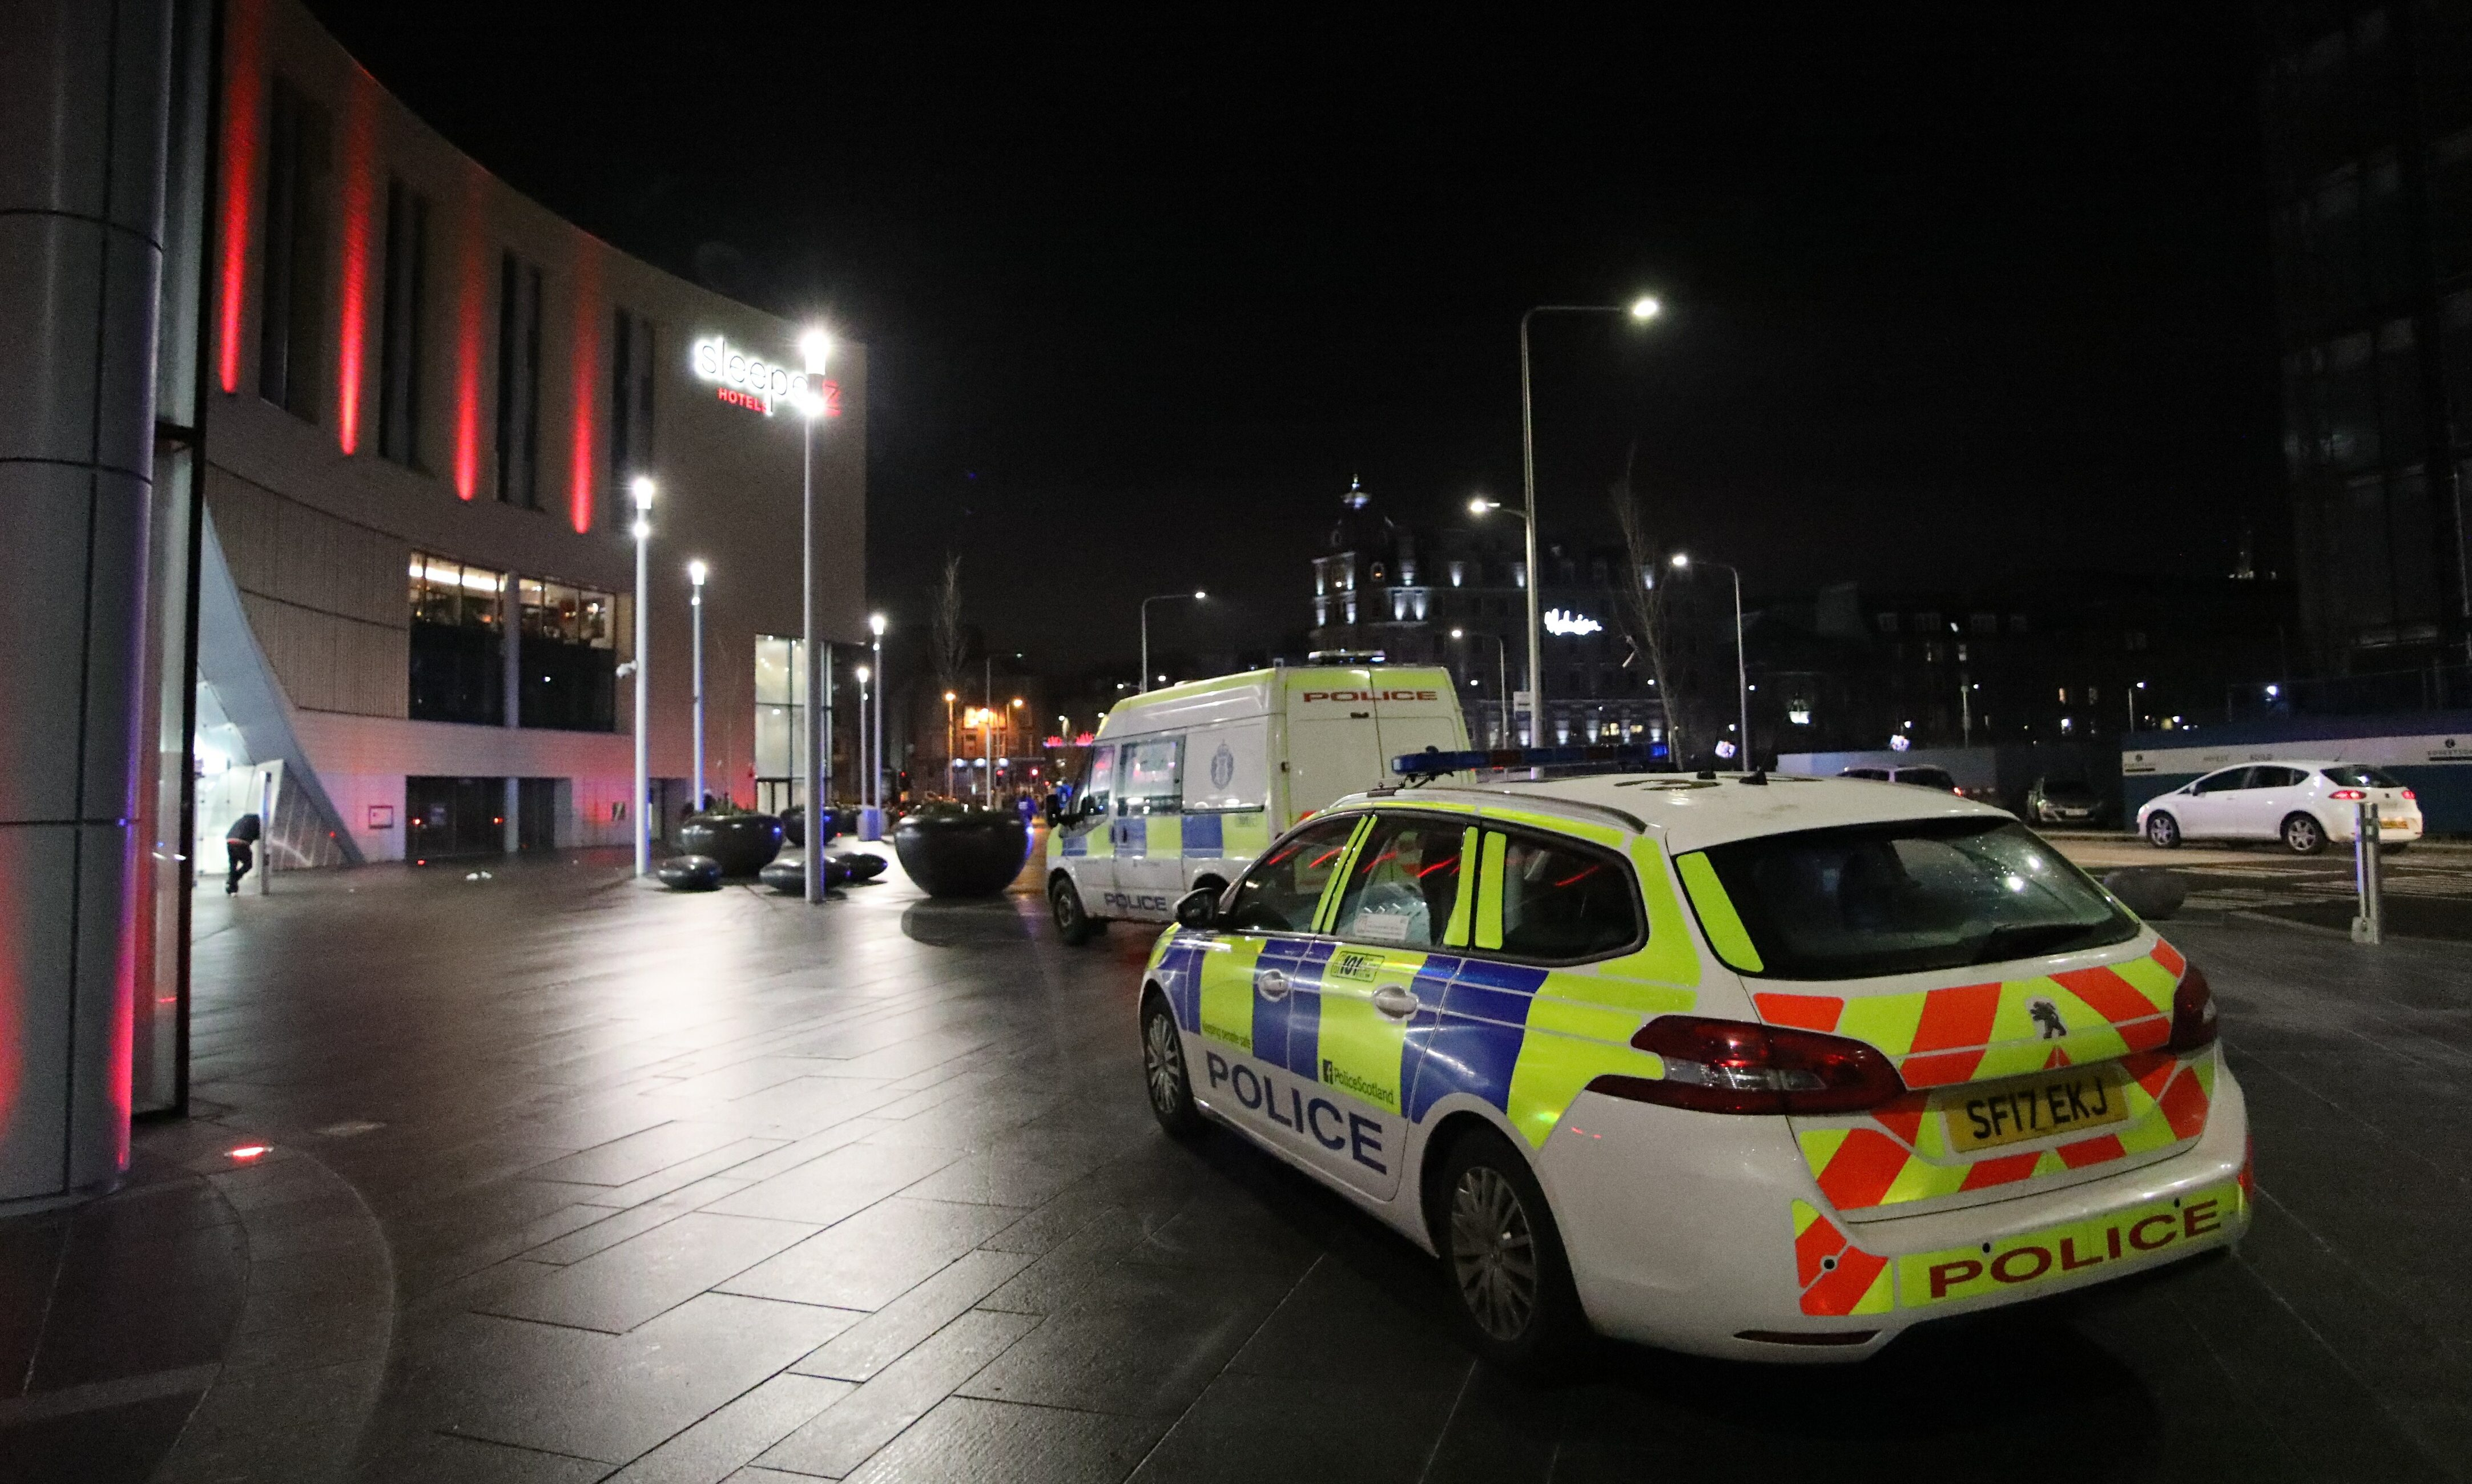 Police outside Dundee Rail Station on Friday night.